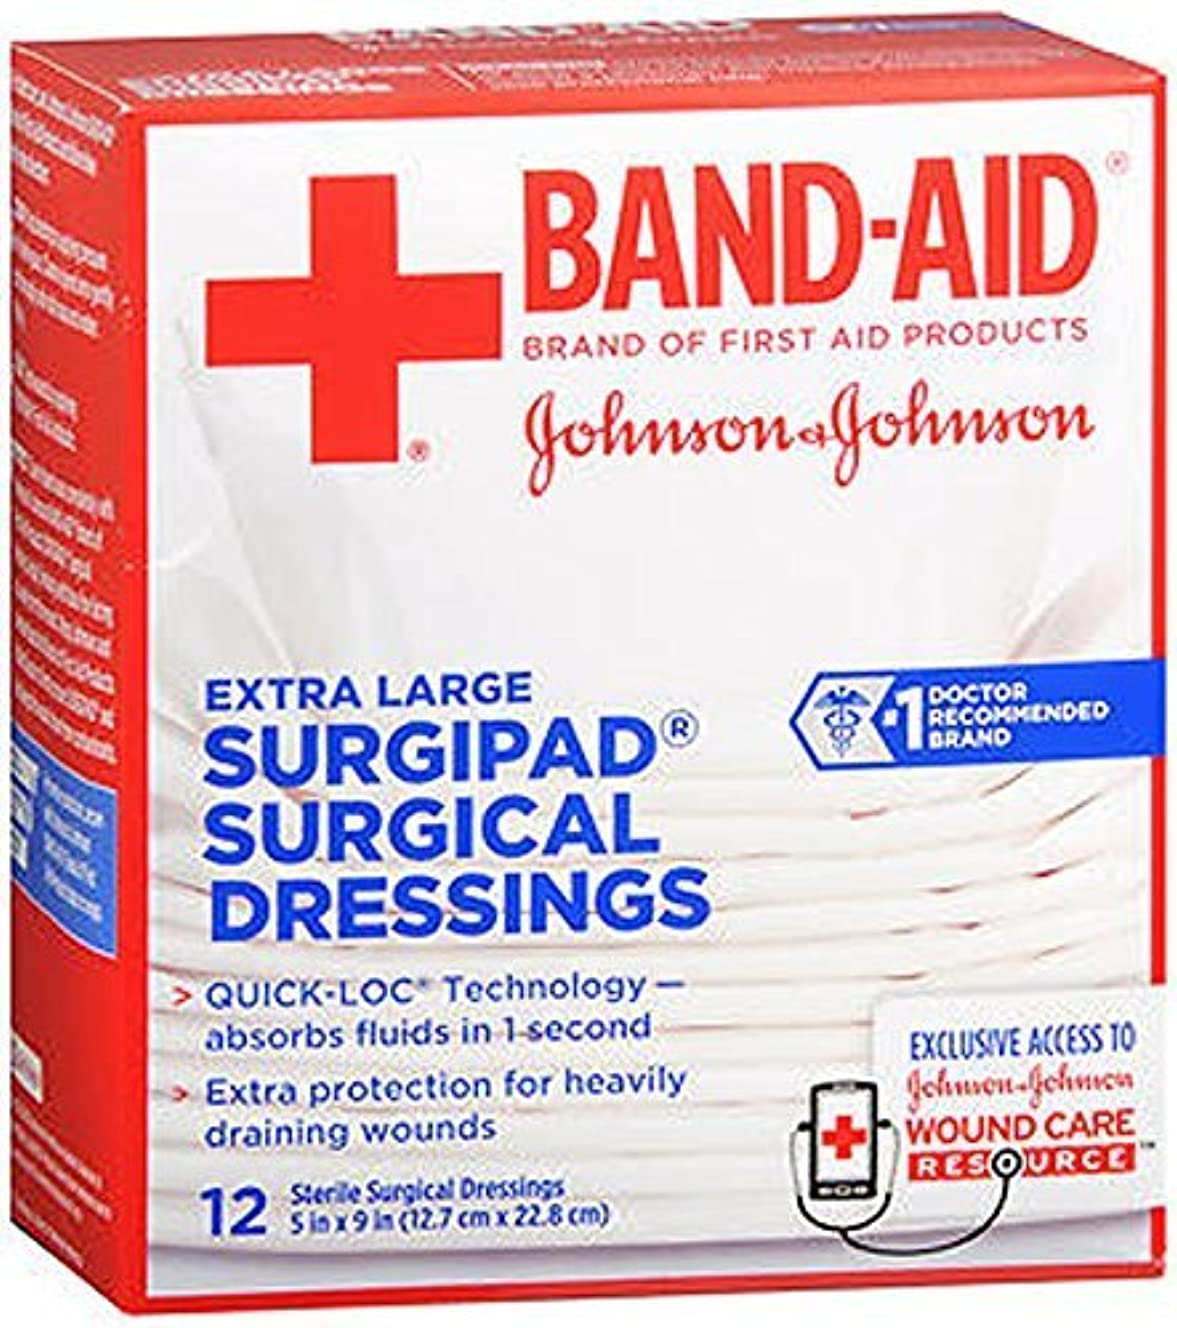 BAND-AID Surgipad Surgical Dressings Extra Large 5 in x 9 in - 12 each by Band-Aid